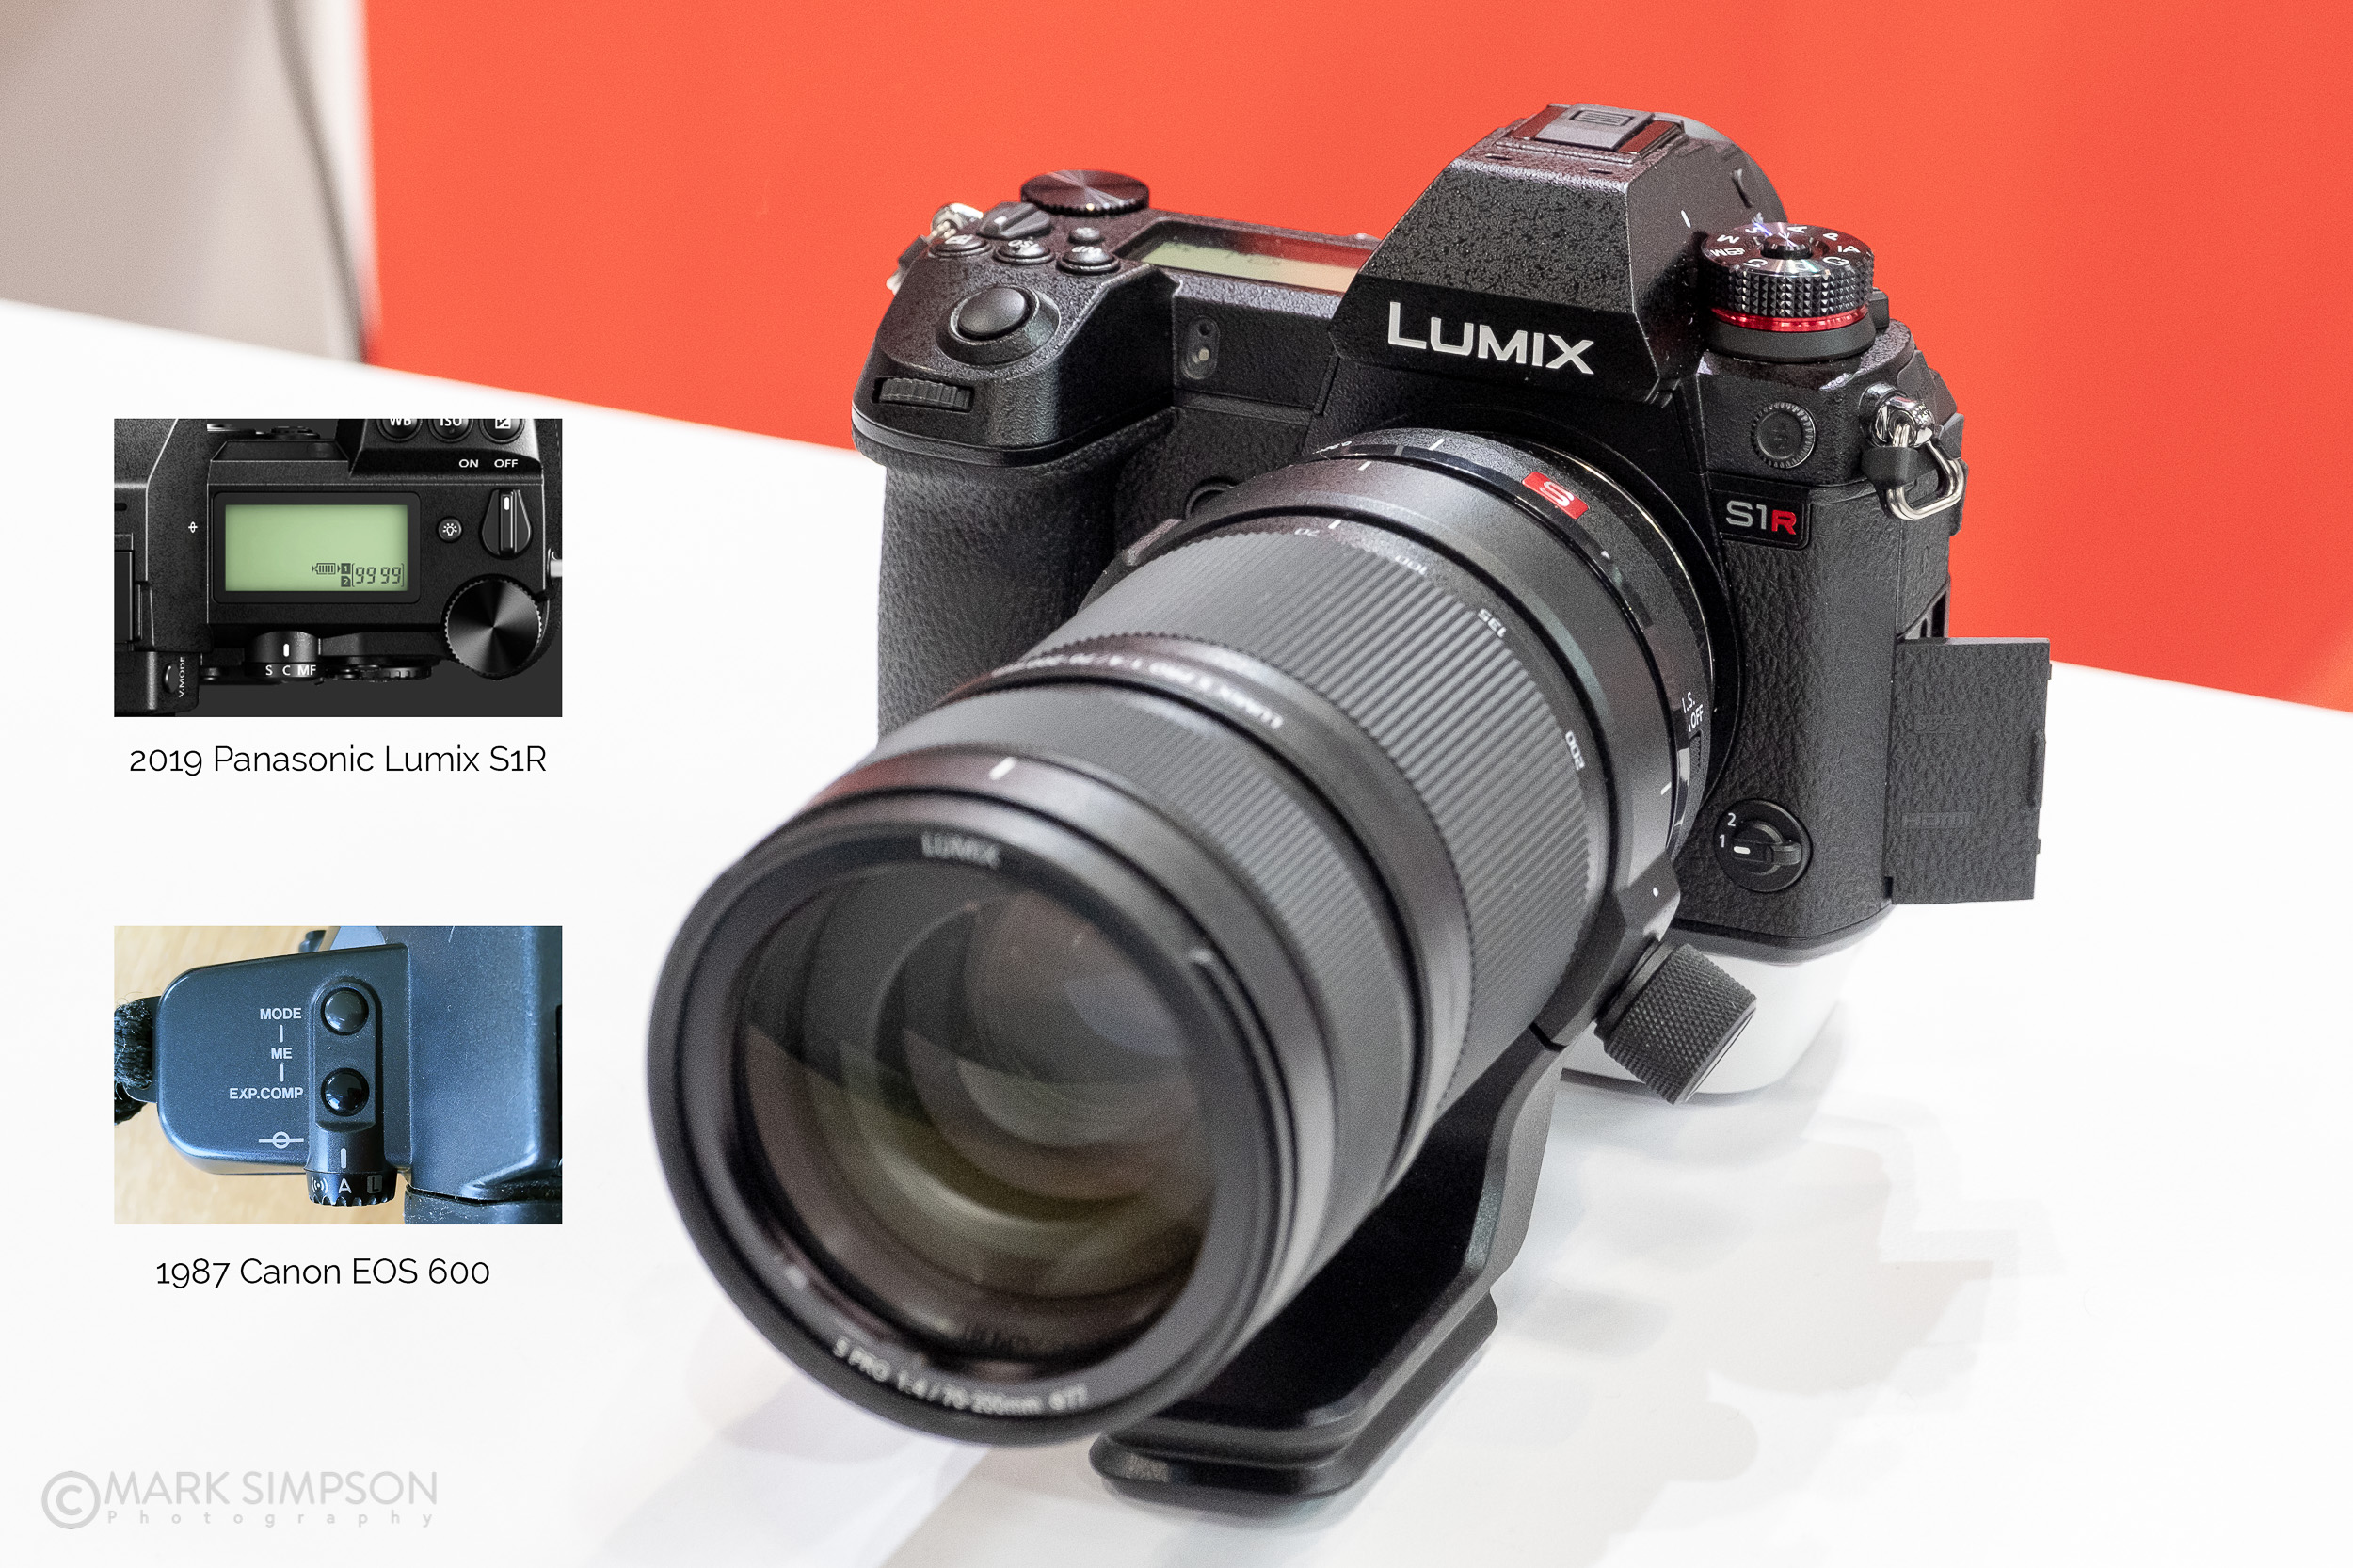 The new Panasonic Lumix DC-S1RM camera with a focus mode dial (and top LCD) that look very similar to my Canon EOS 600 from 1987! (FujiFilm X-T2, Fujinon XF16-55mmF2.8 R LM WR)